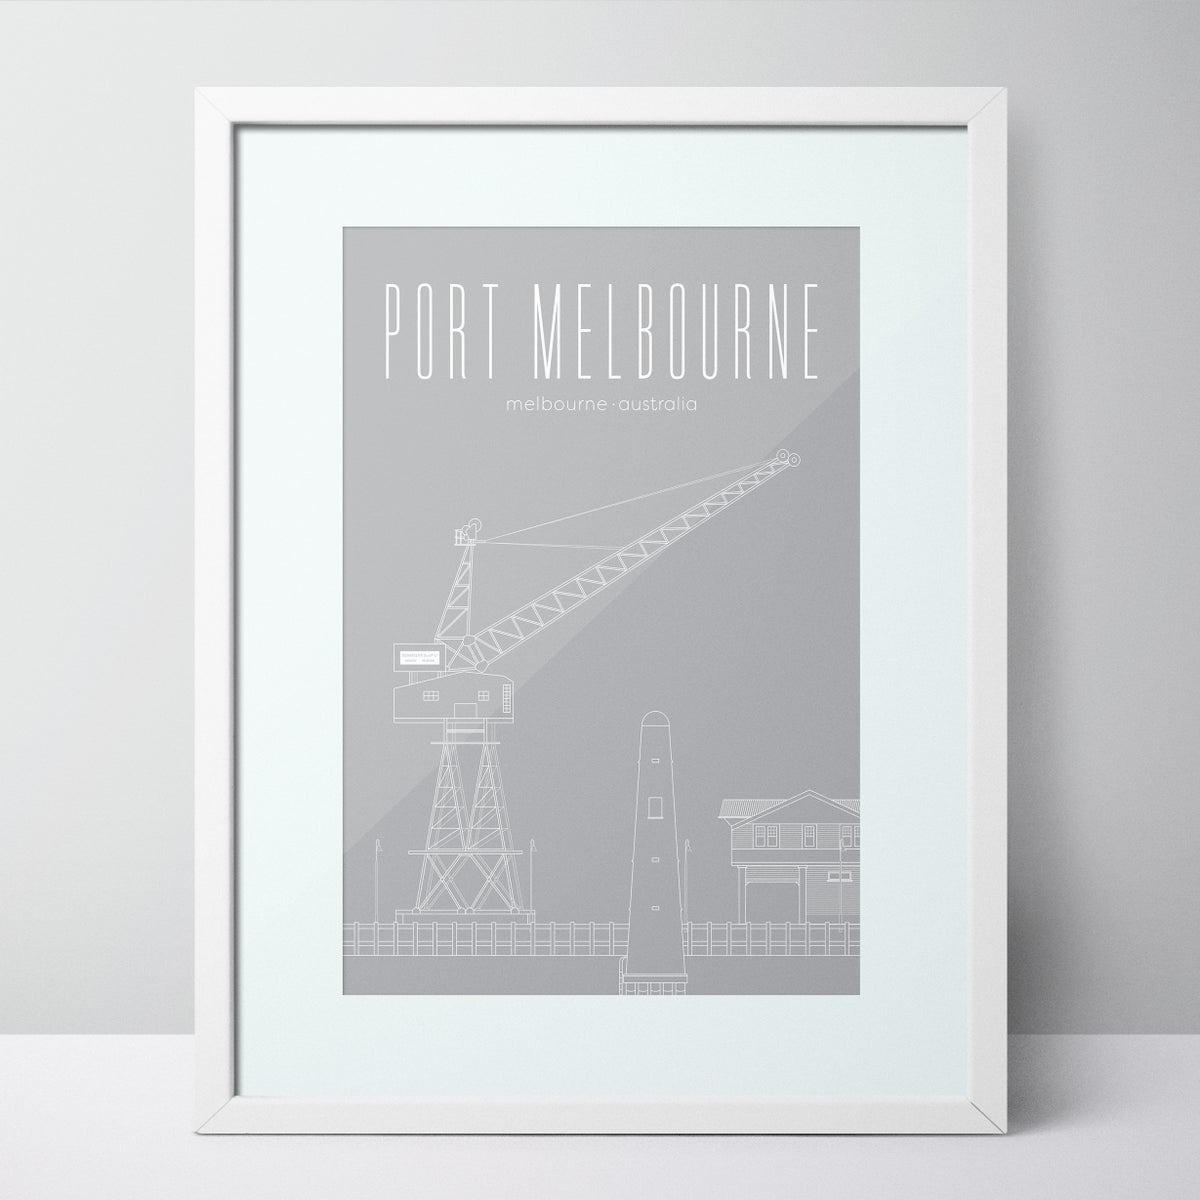 Image of Station Pier - Port Melbourne.